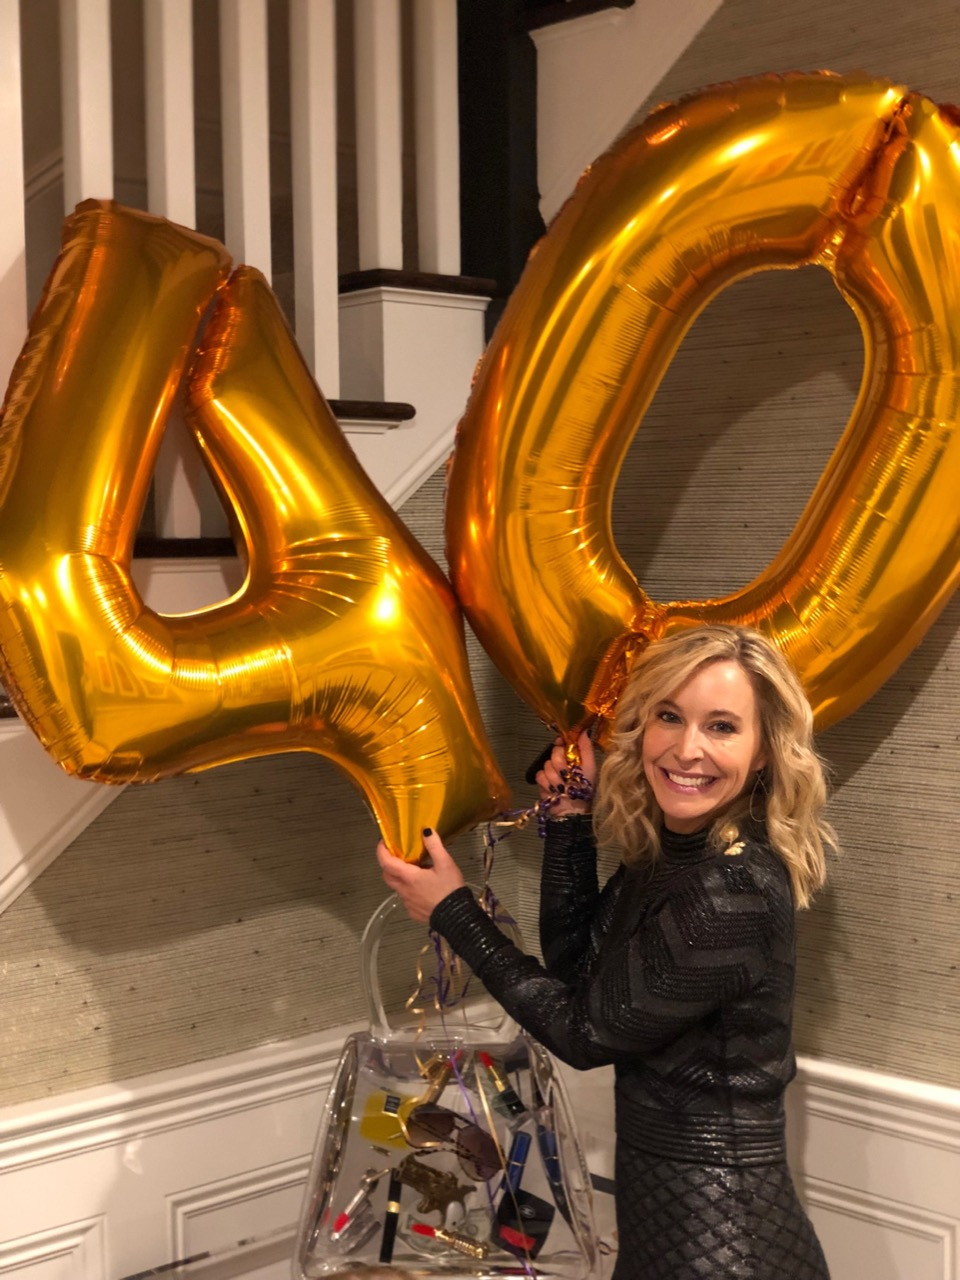 This is 40. And  THIS  dress is everything (including number 26 on the list below).